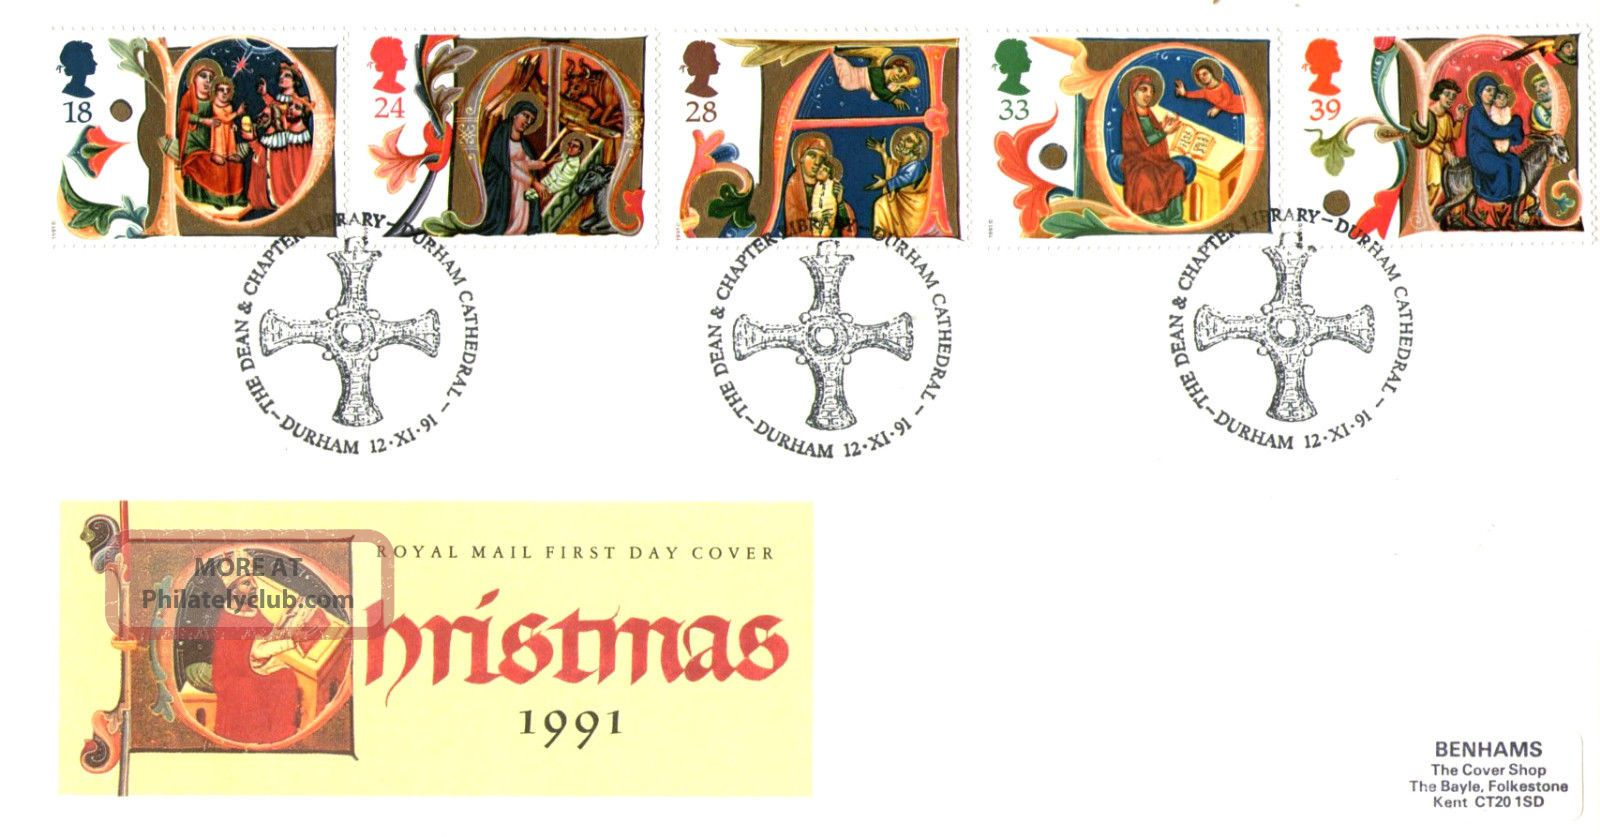 12 November 1991 Christmas Royal Mail First Day Cover Durham Cathedral Shs Topical Stamps photo